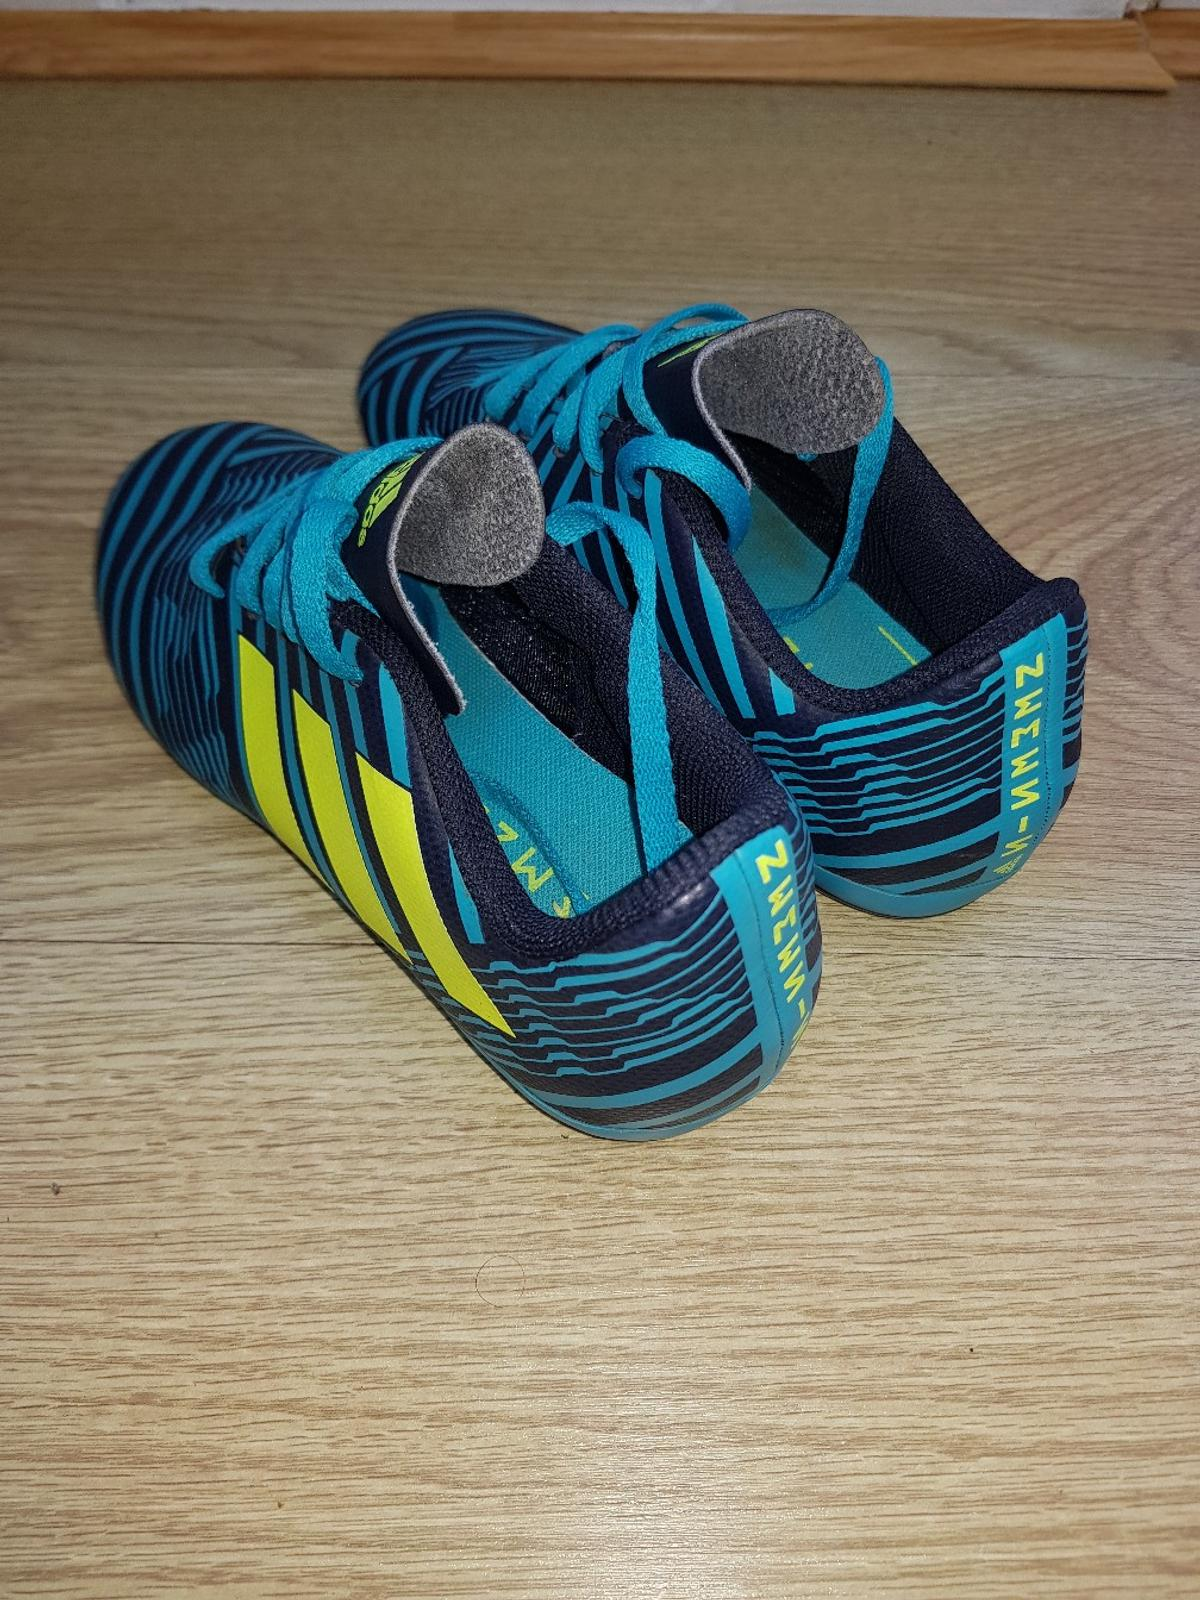 new arrive on feet at sale Kids Football trainers size 1